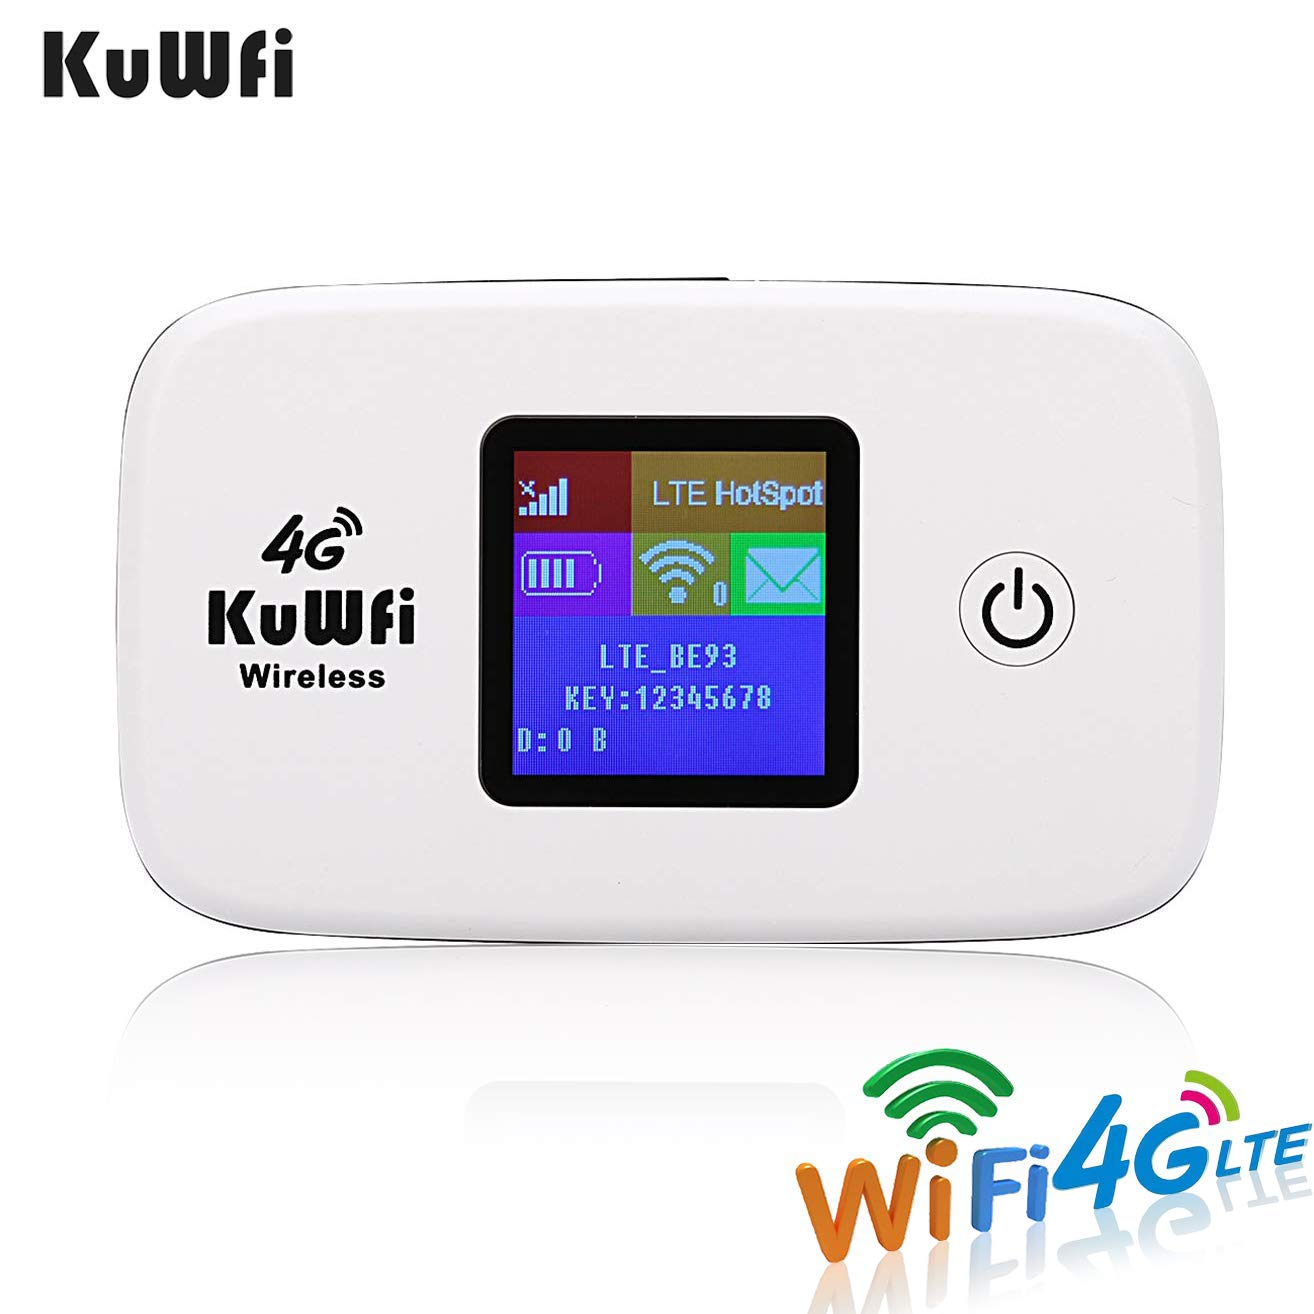 KuWFi Unlocked Travel Partner 4G LTE Wireless 4G Router with SIM Card Slot  Support LTE FDD B1/B3 TDD B41 Work with Sprint in US and Europe Caribbean